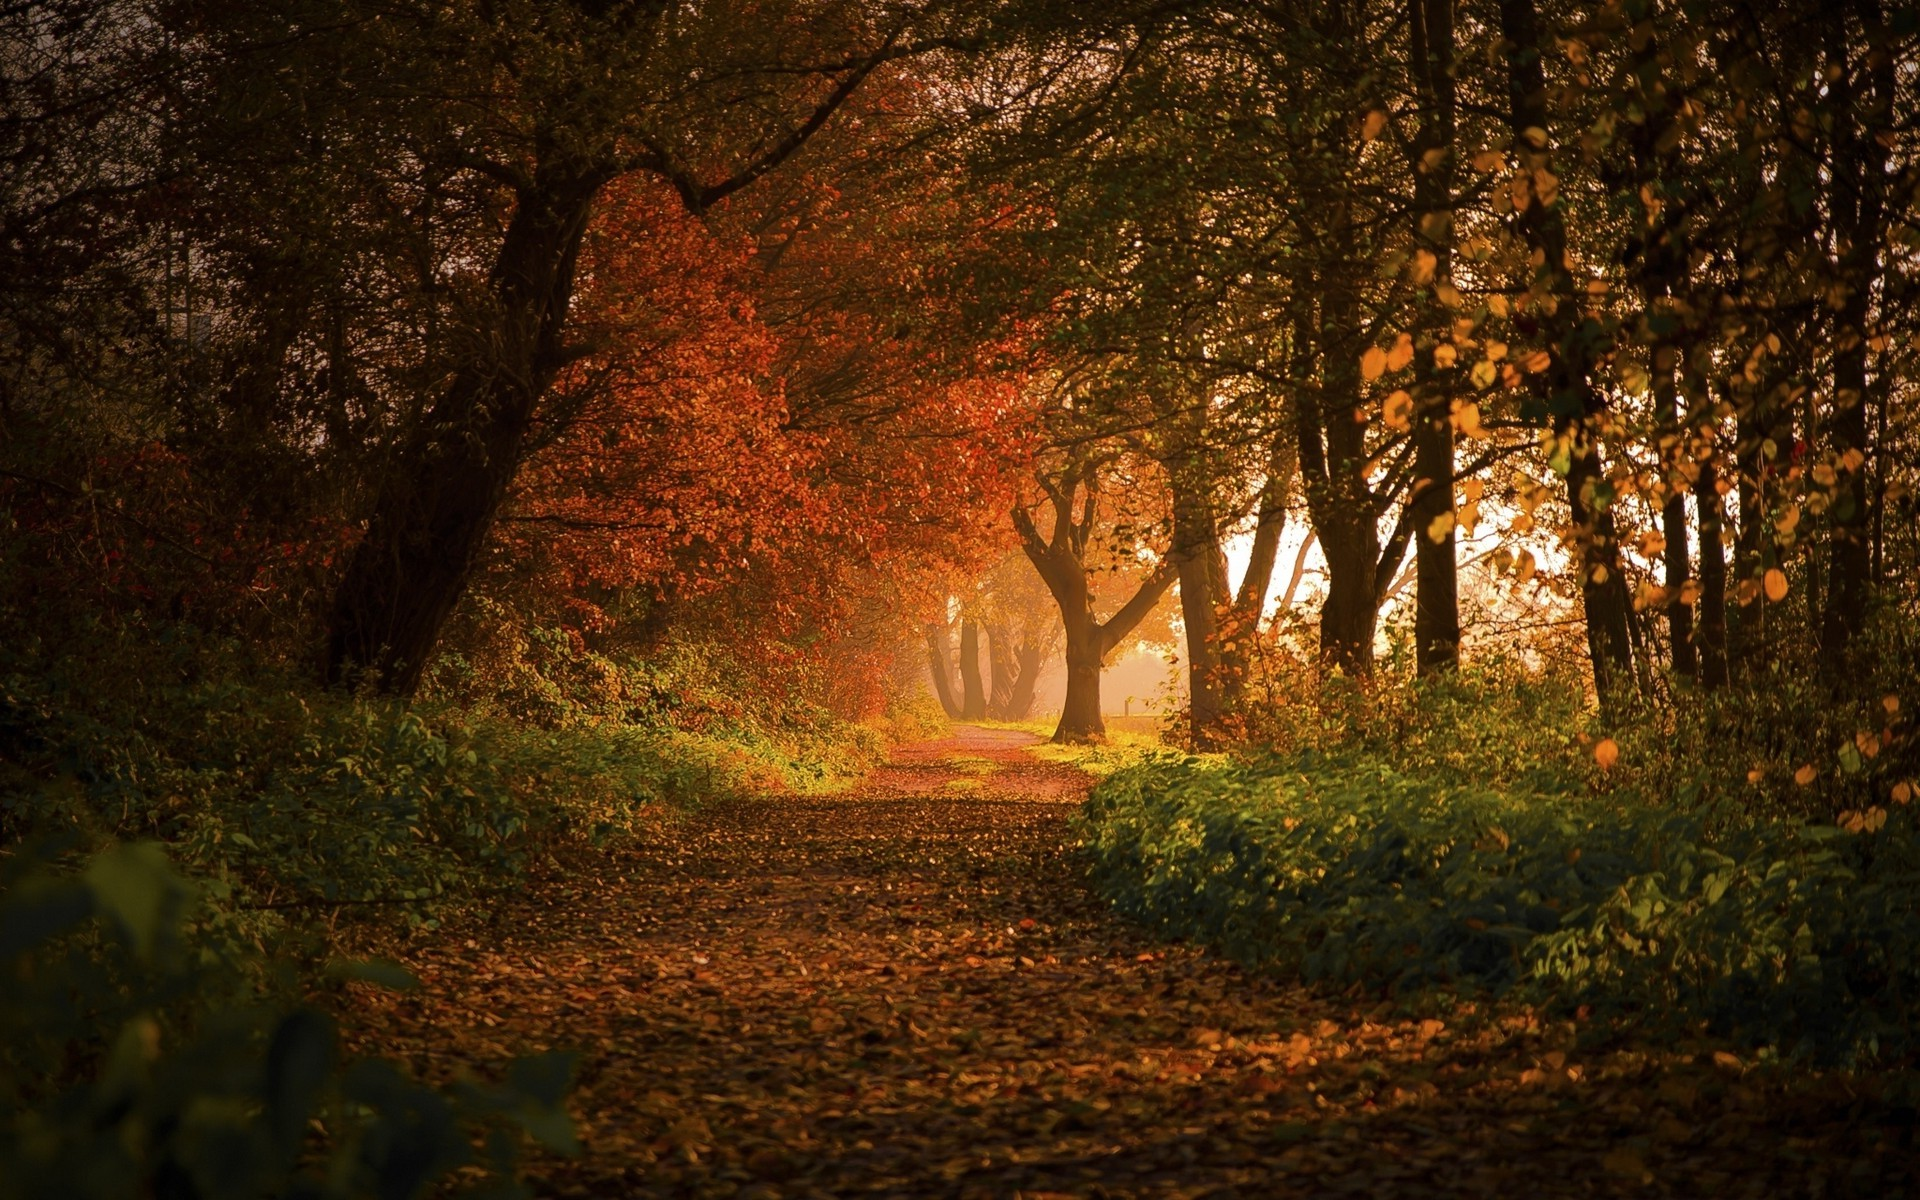 Fall Leaves Hd Mobile Wallpaper Nature Landscape Forest Fall Path Leaves Trees